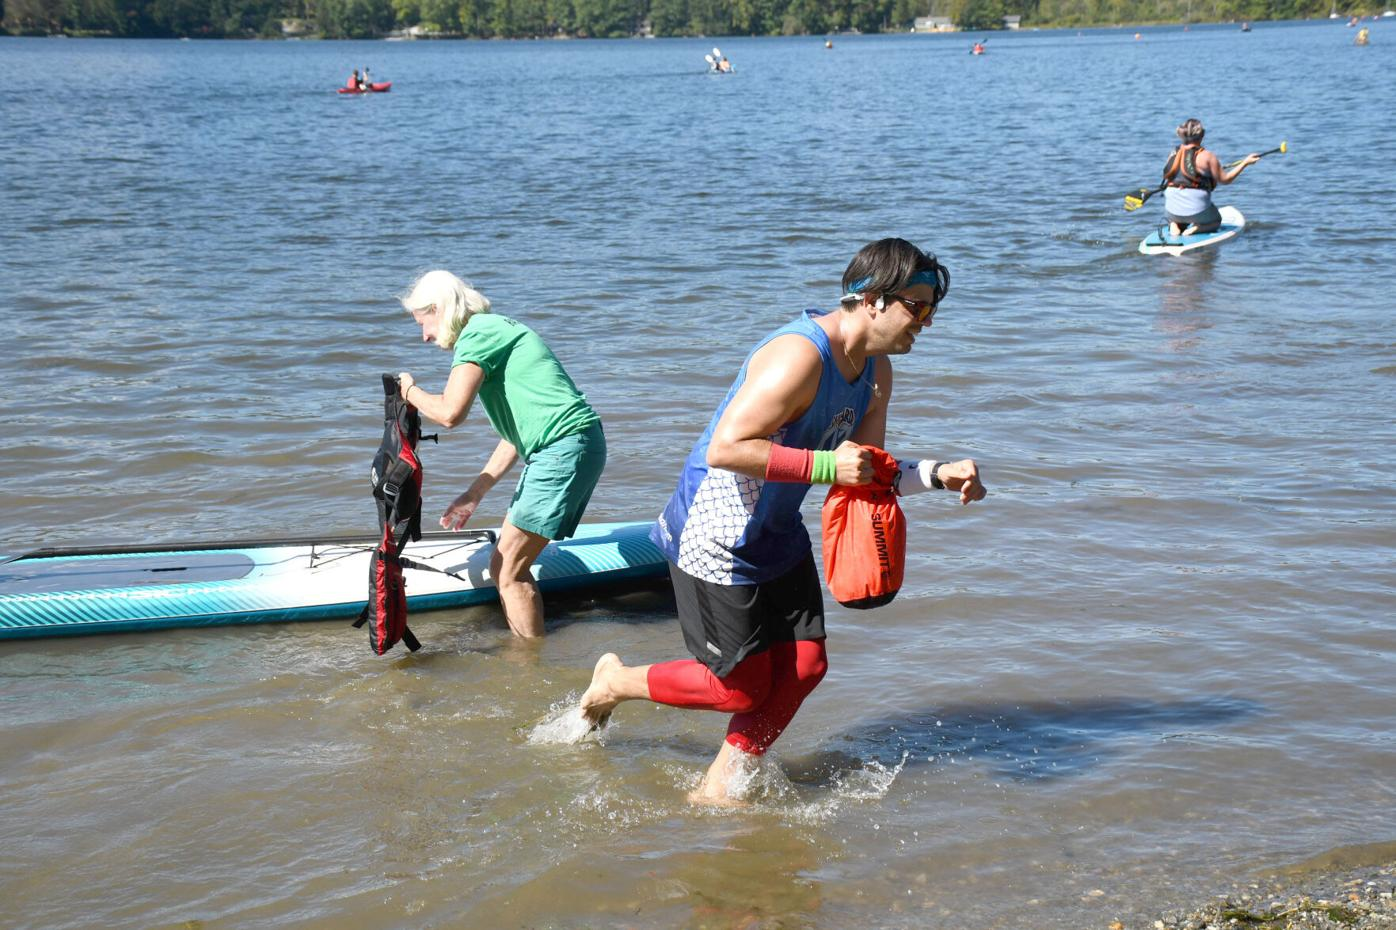 Mike rushes to shore from his paddleboard